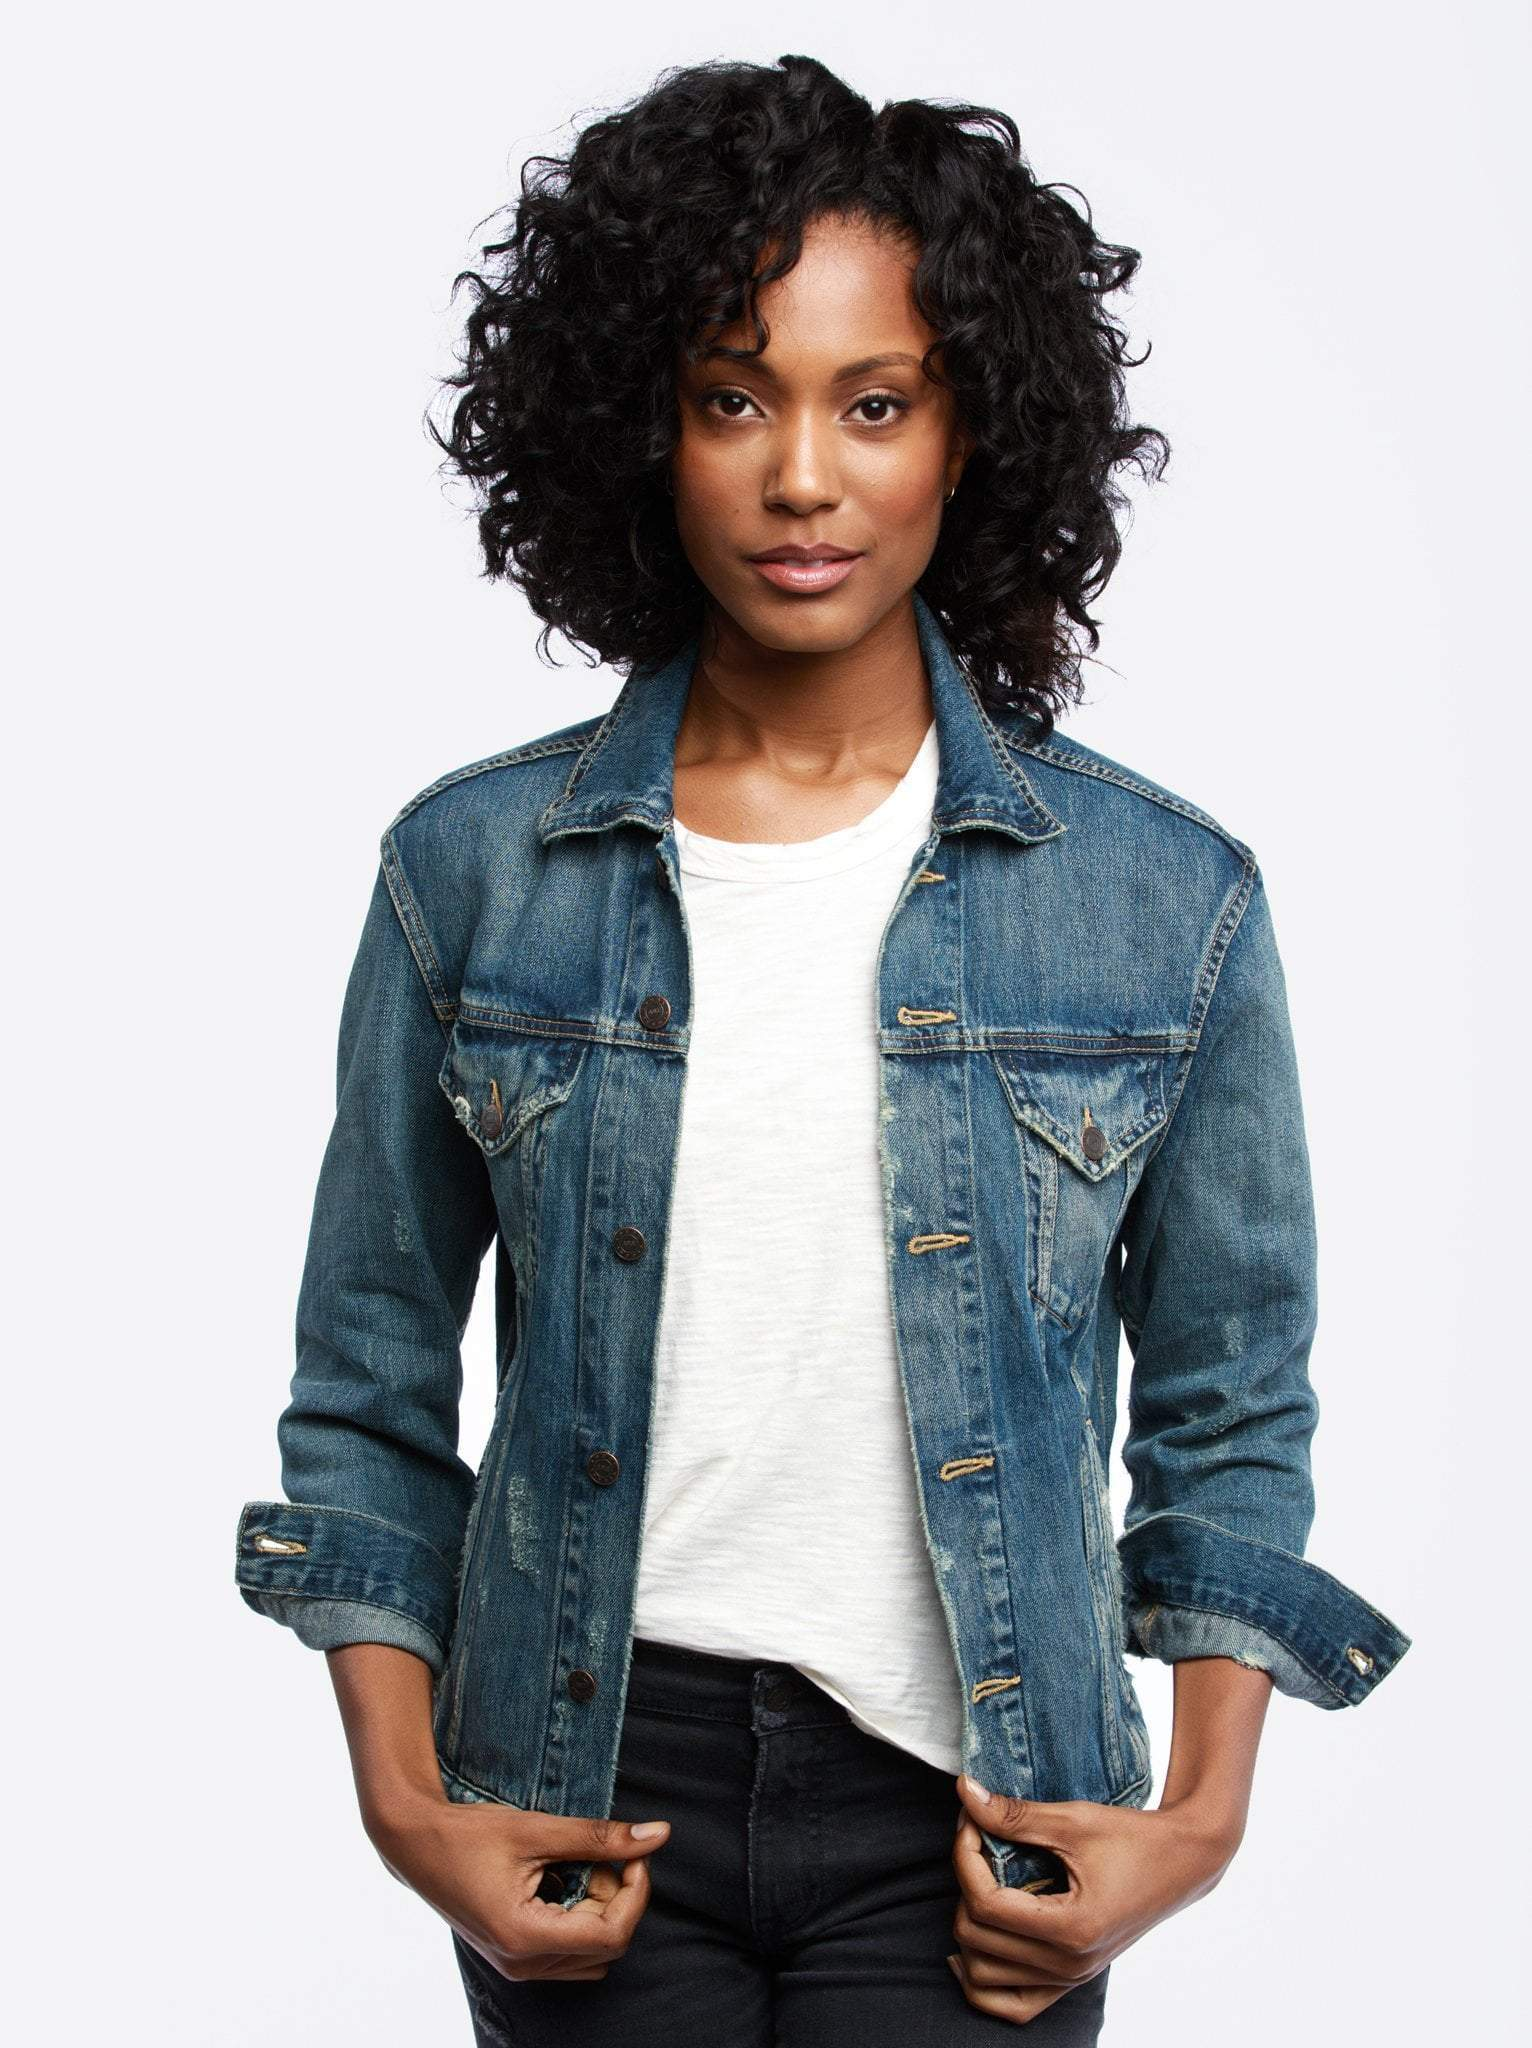 black woman with curly hair in a denim jacket, white tshirt, and black jeans